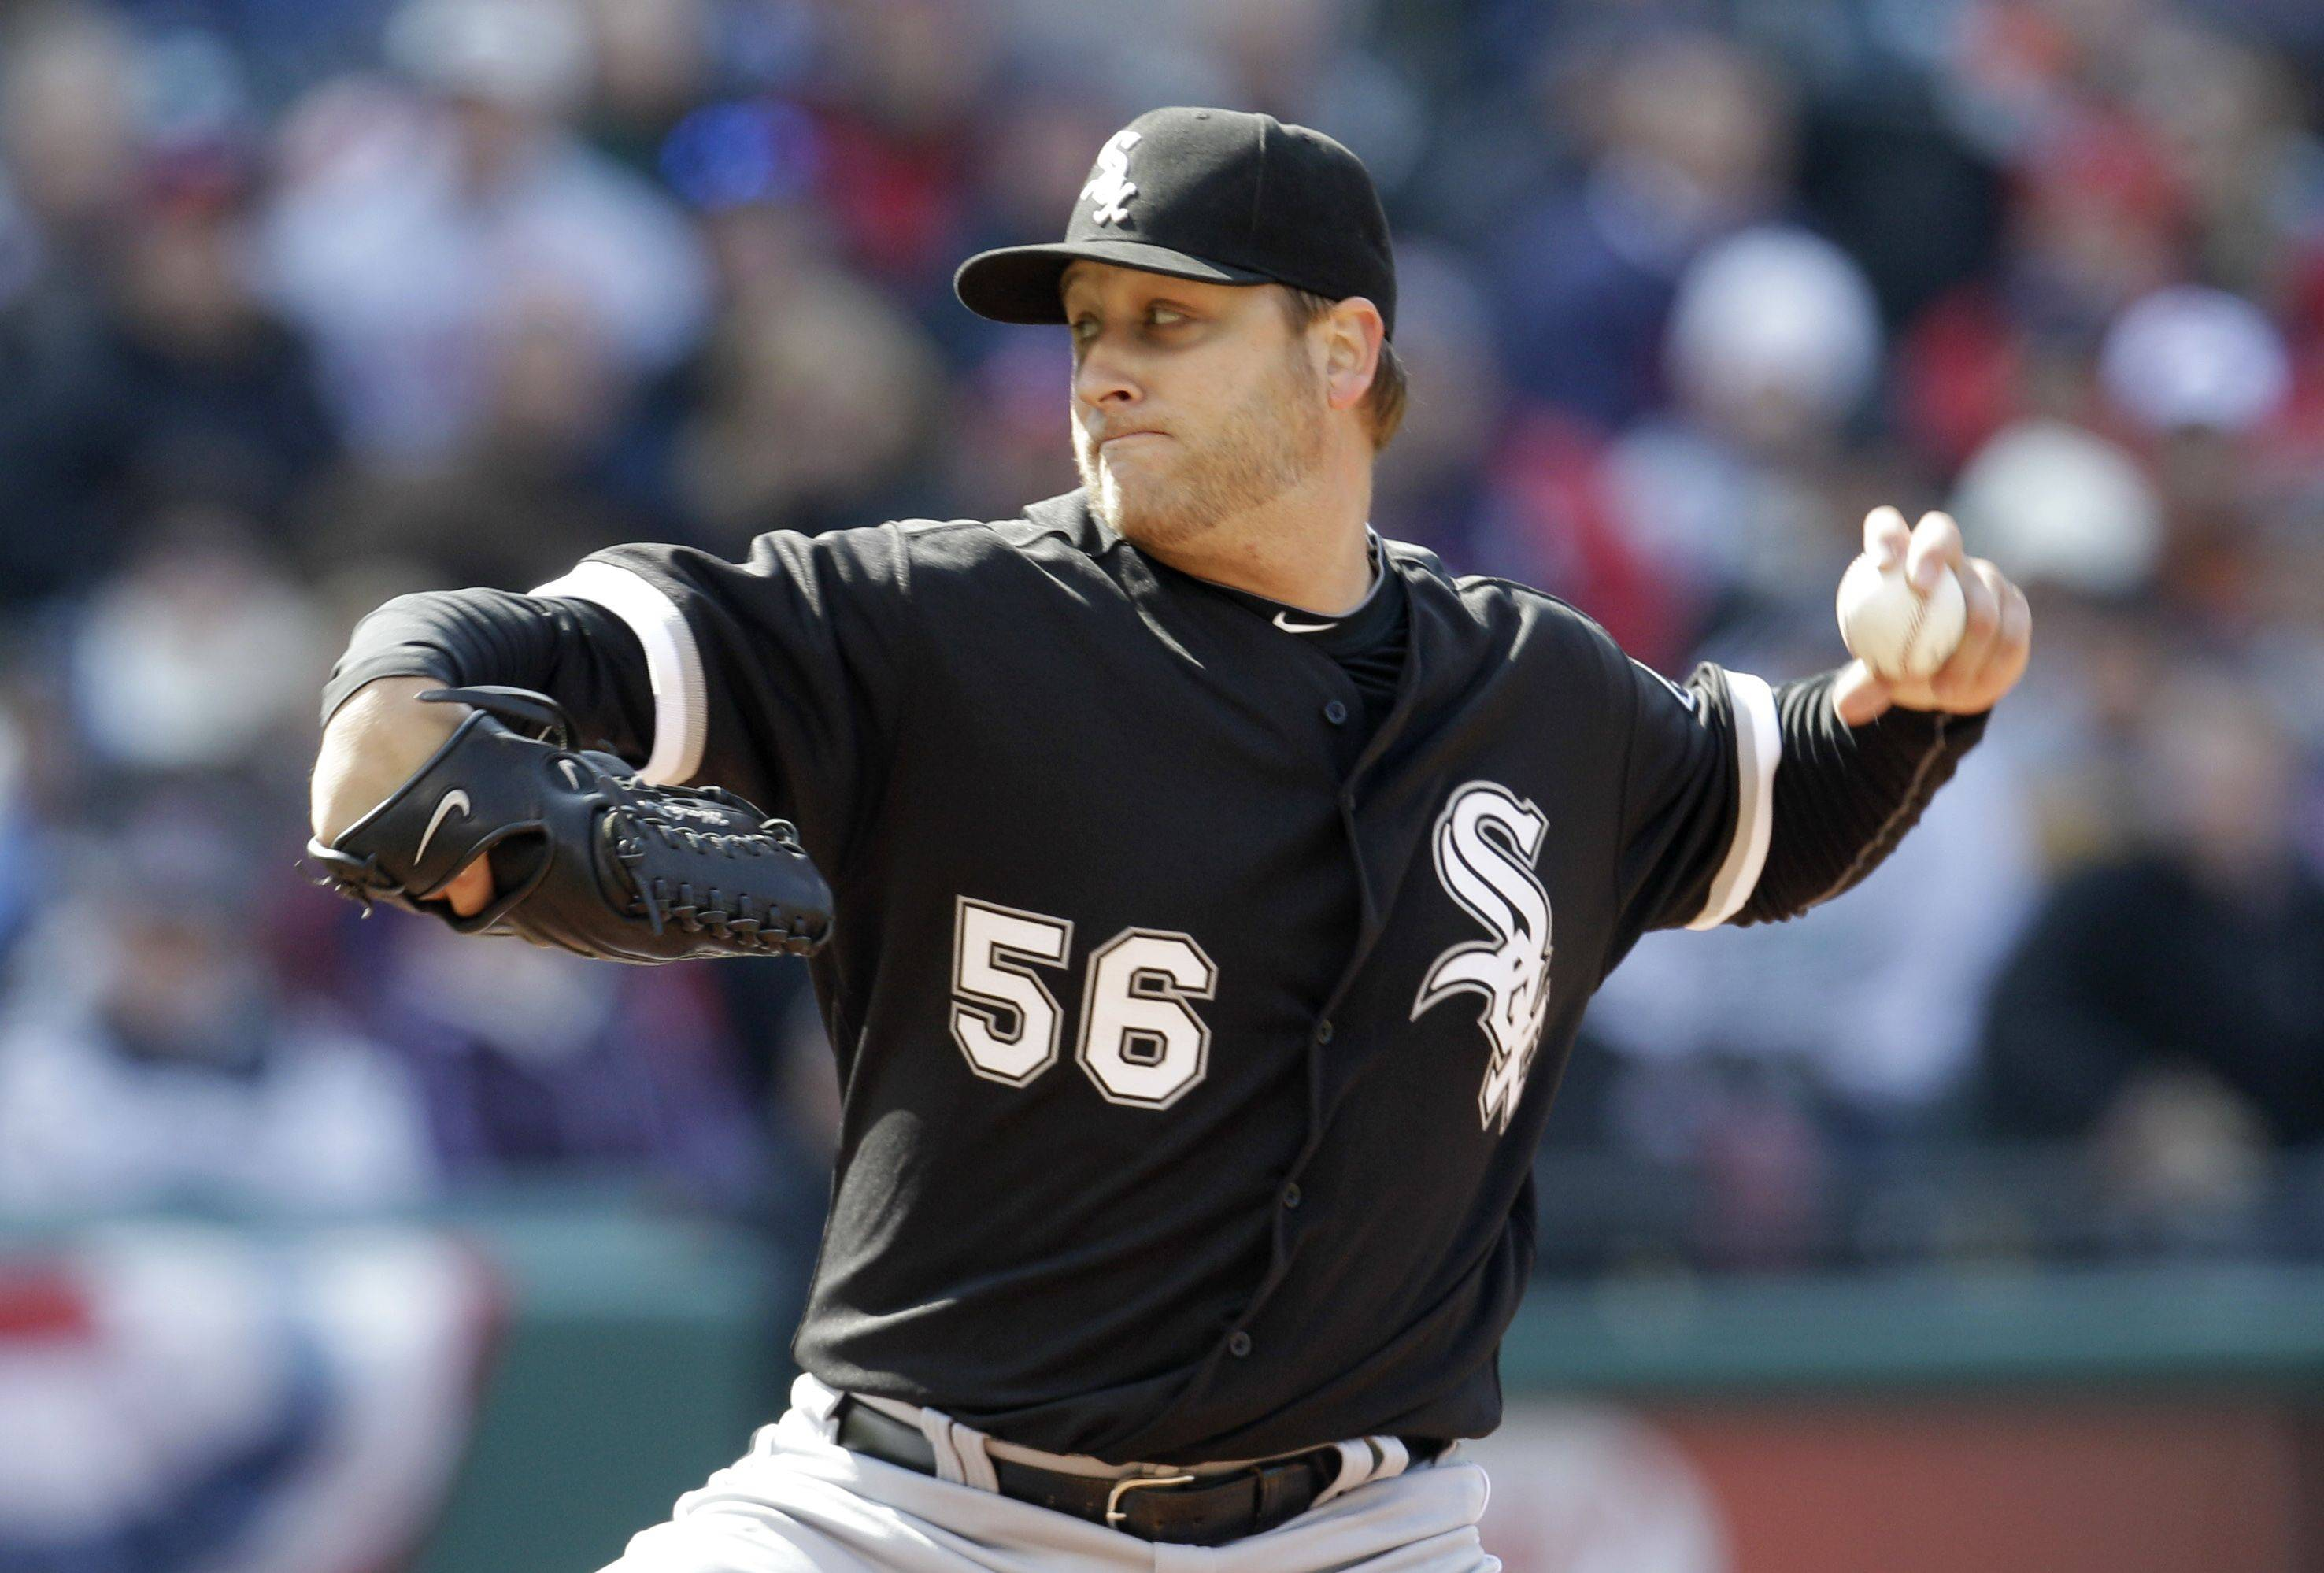 Chicago White Sox starting pitcher Mark Buehrle (56) throws during the second inning of an opening day baseball game against the Cleveland Indians, Friday, April 1, 2011, in Cleveland.